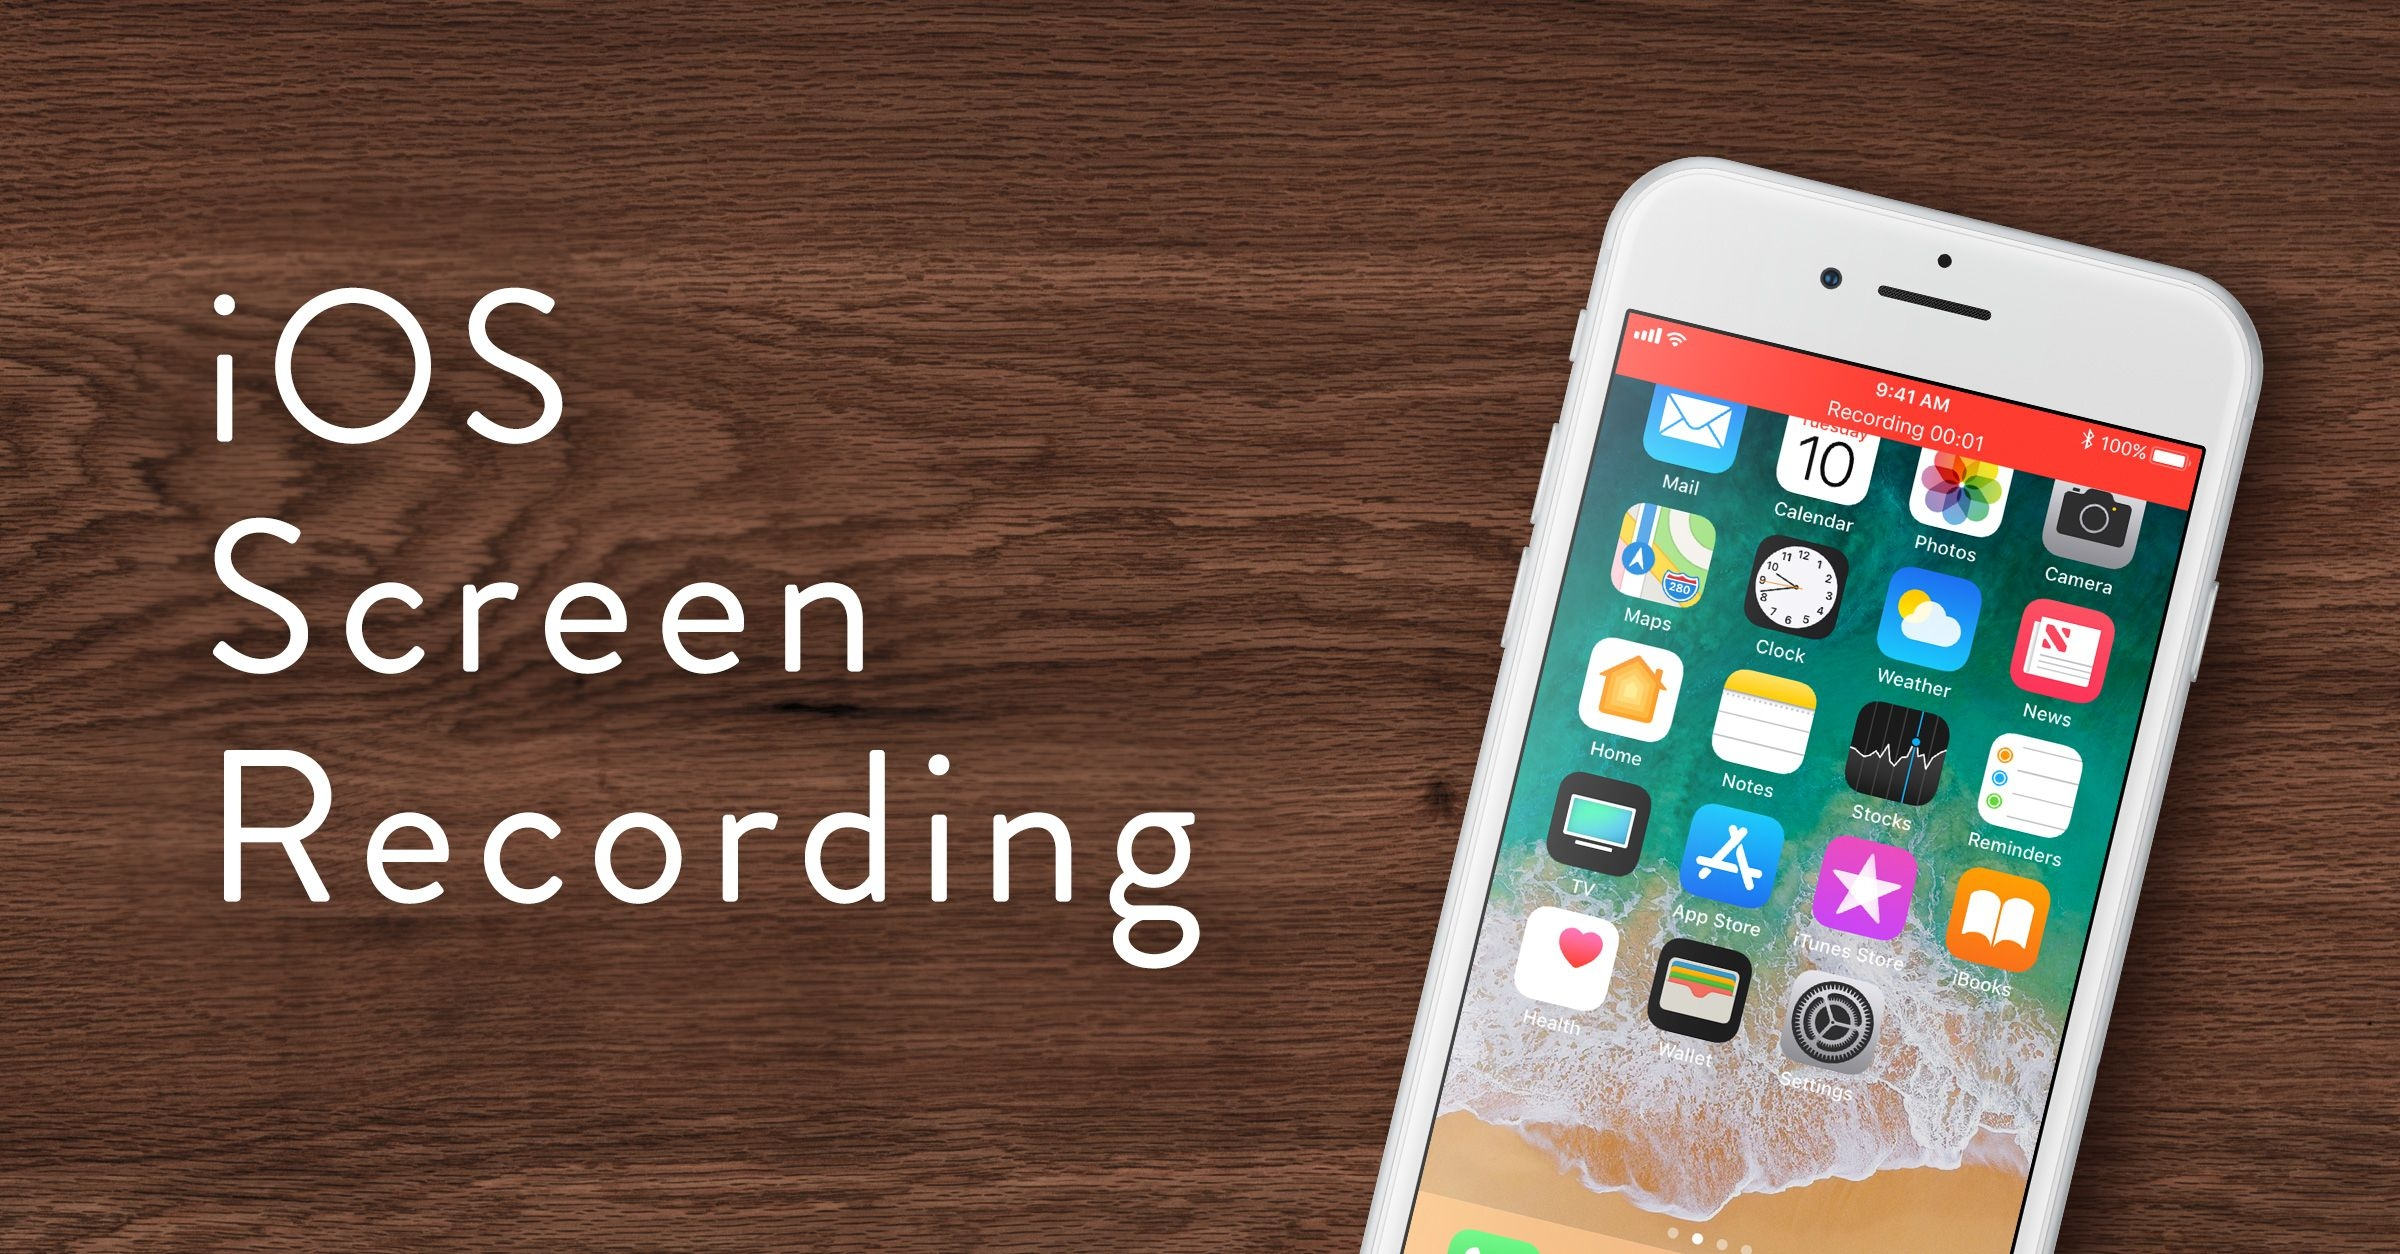 How To Use Screen Recording On Your Iphone, Ipad Or Ipod Touch